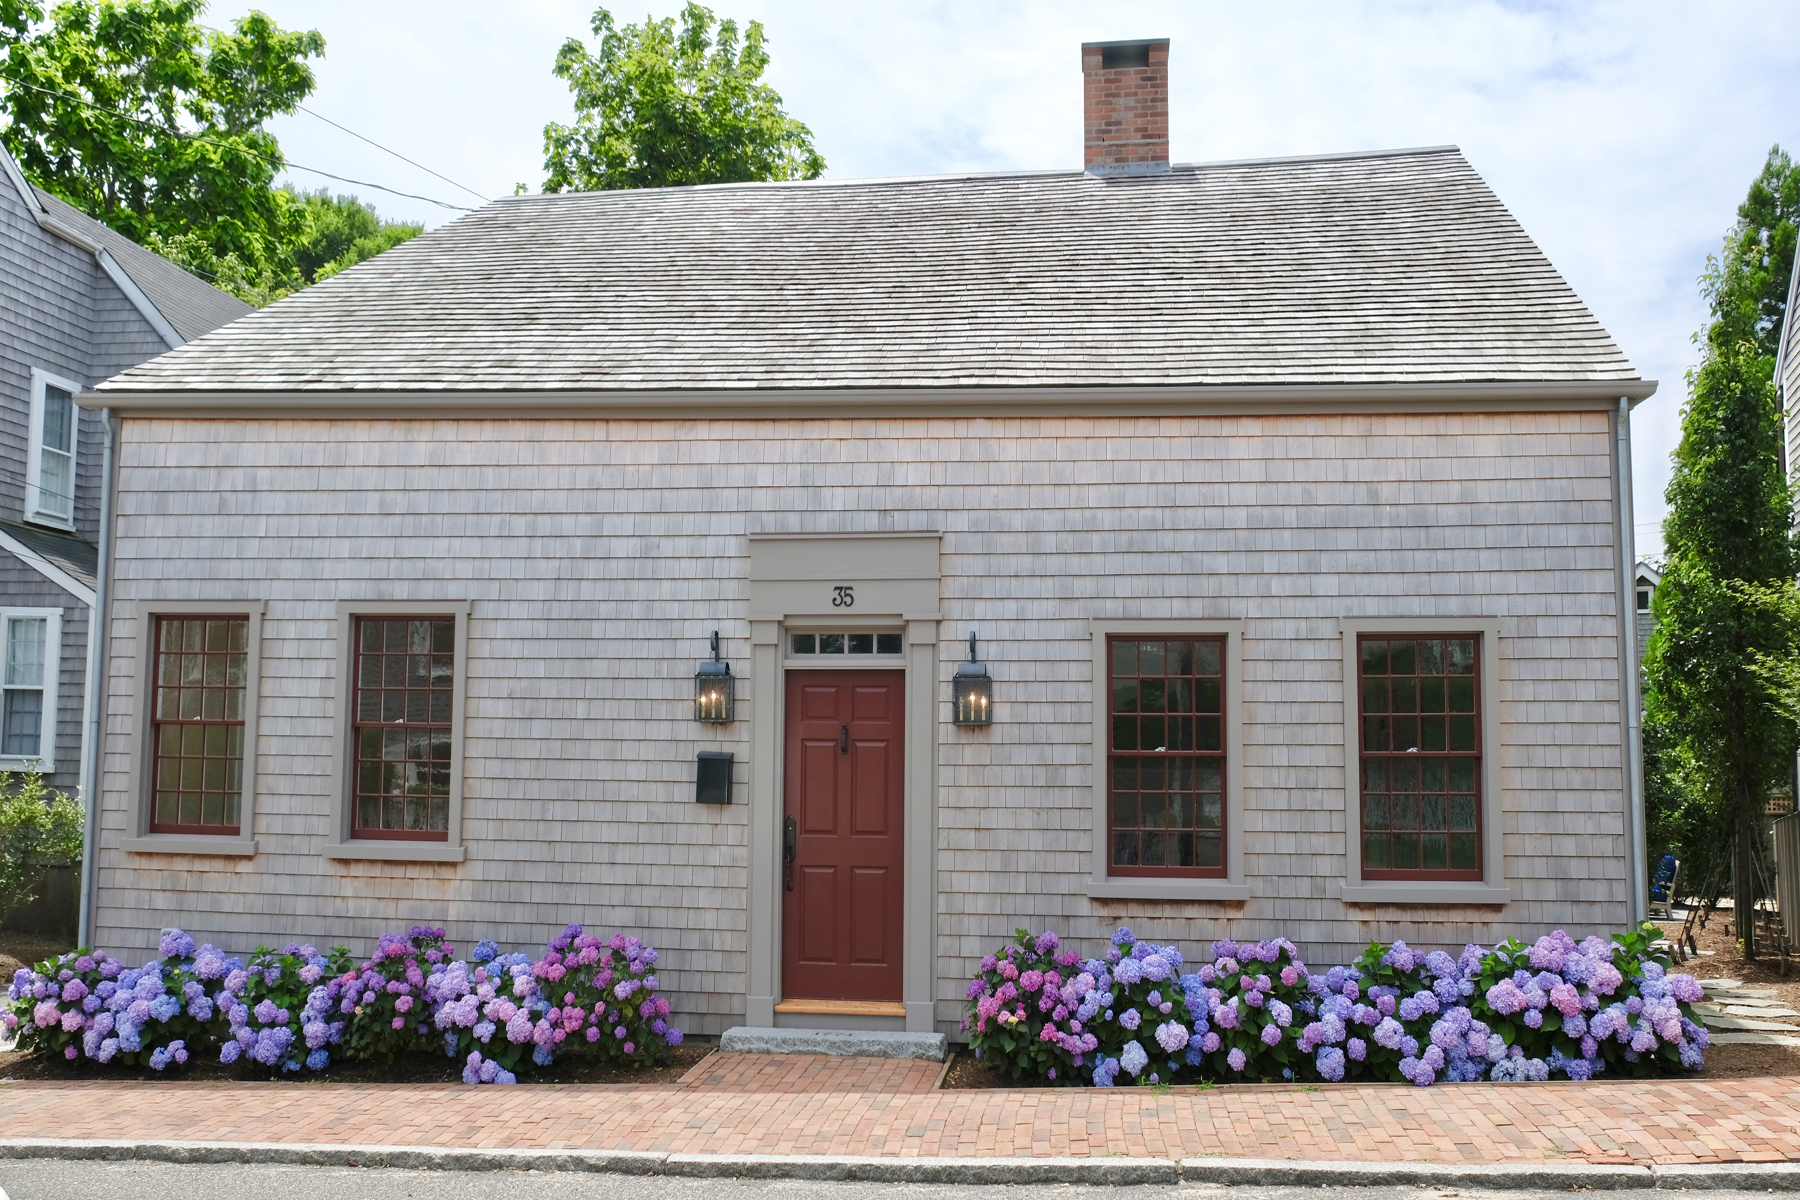 Single Family Home for Sale at Historic Gem Impeccably Rebuilt 35 Pine Street Nantucket, Massachusetts, 02554 United States